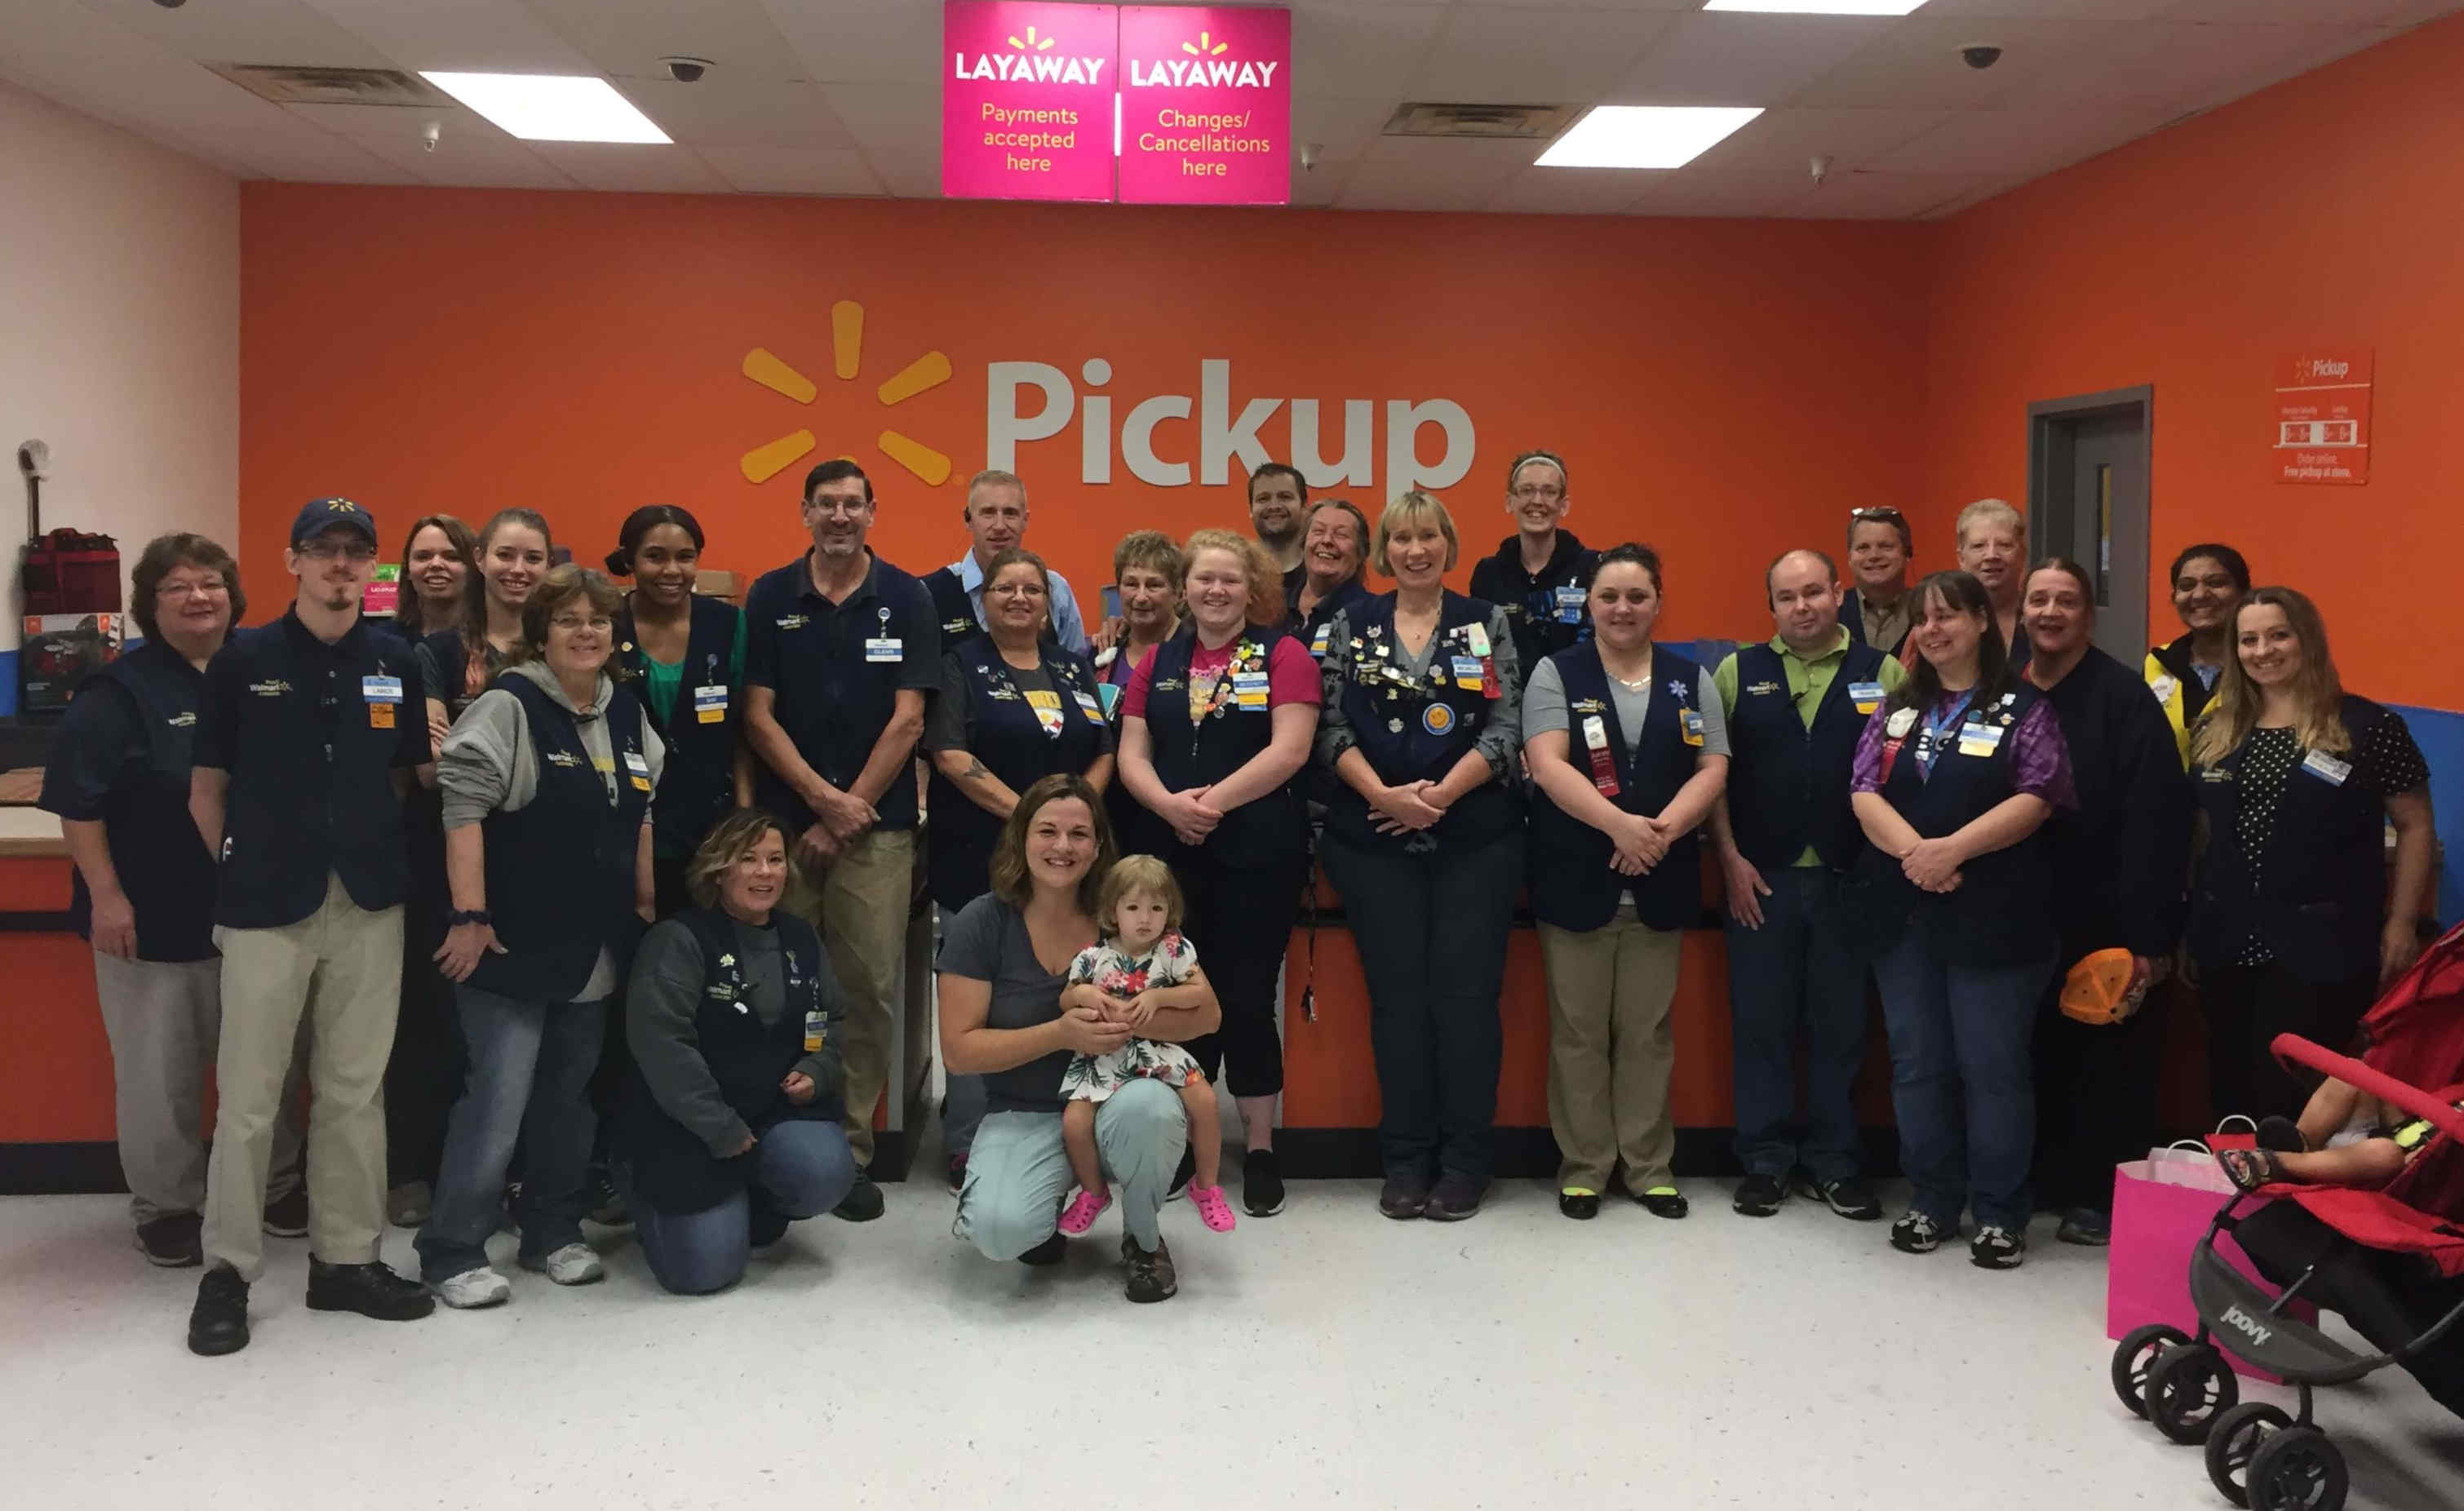 A group of people in Wal-Mart vests pose for a photo with a woman and her young daughter.